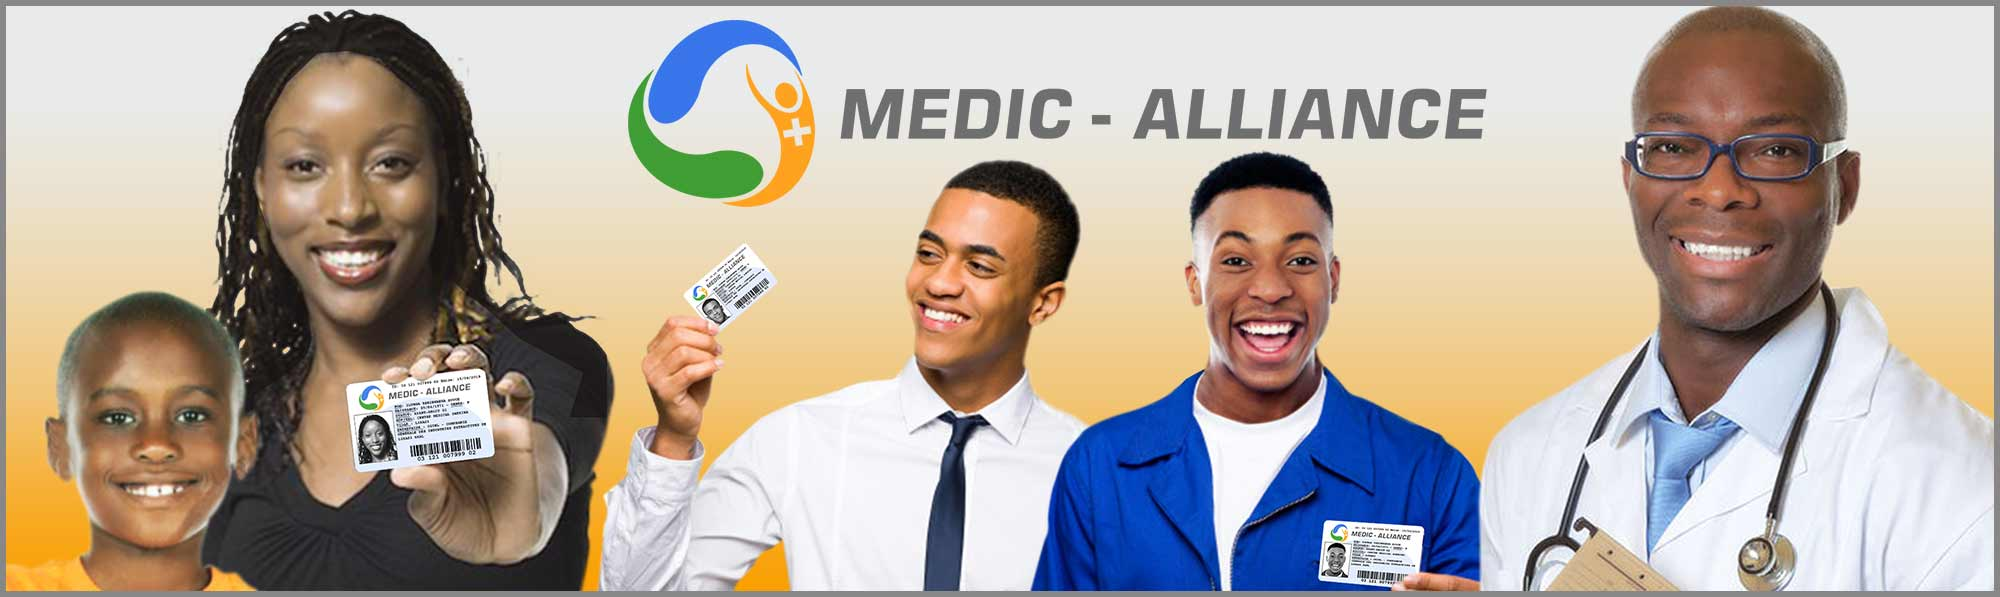 Permalink to:Health Care Insurance MEDIC – ALLIANCE